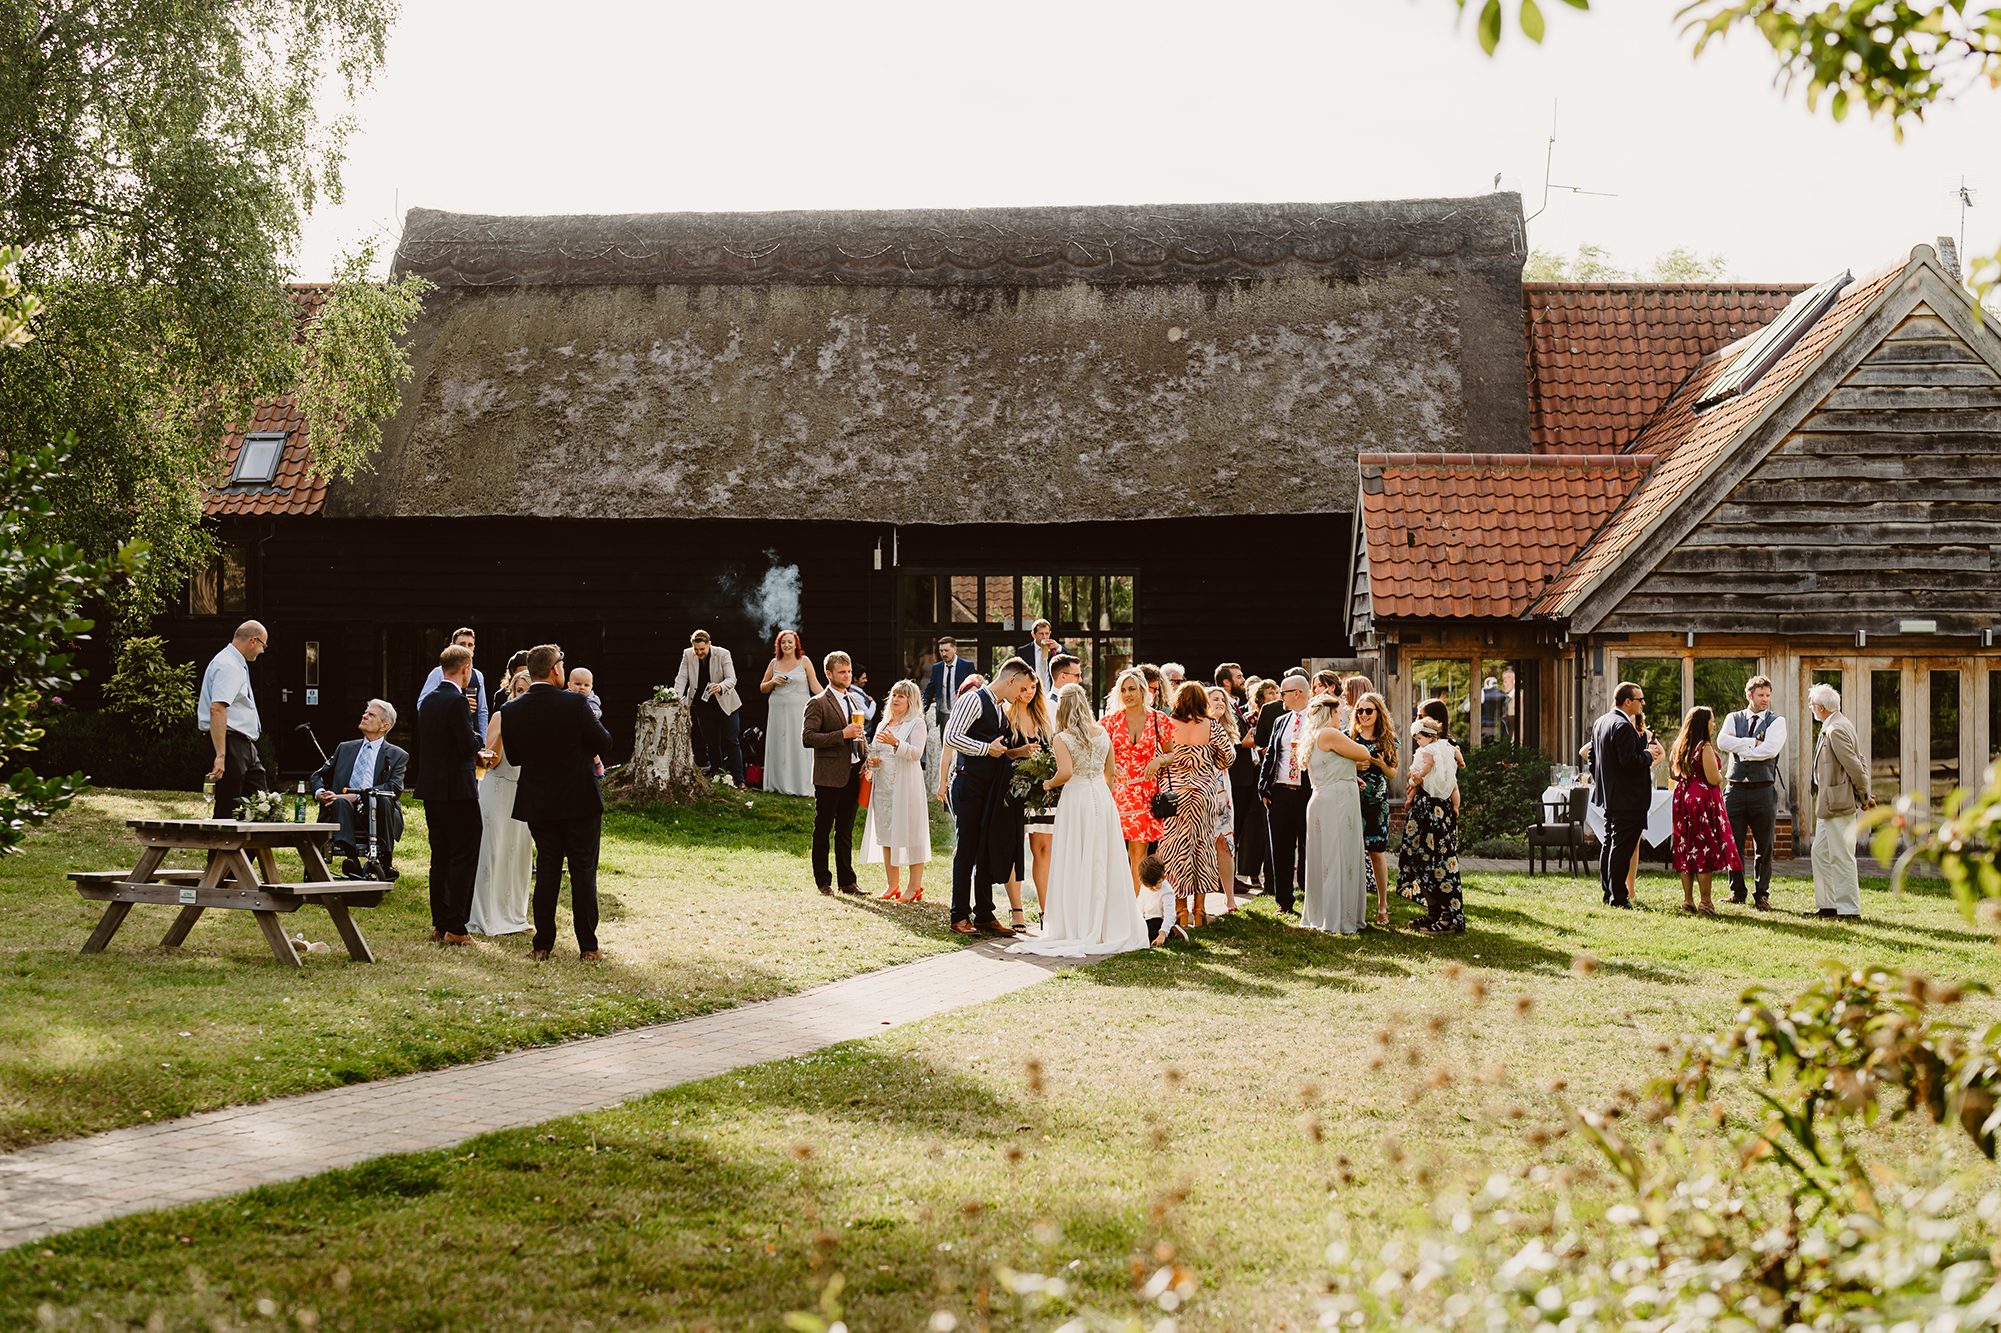 Genevieve and John's Outdoor Wedding Reception at Ivy House Country Hotel